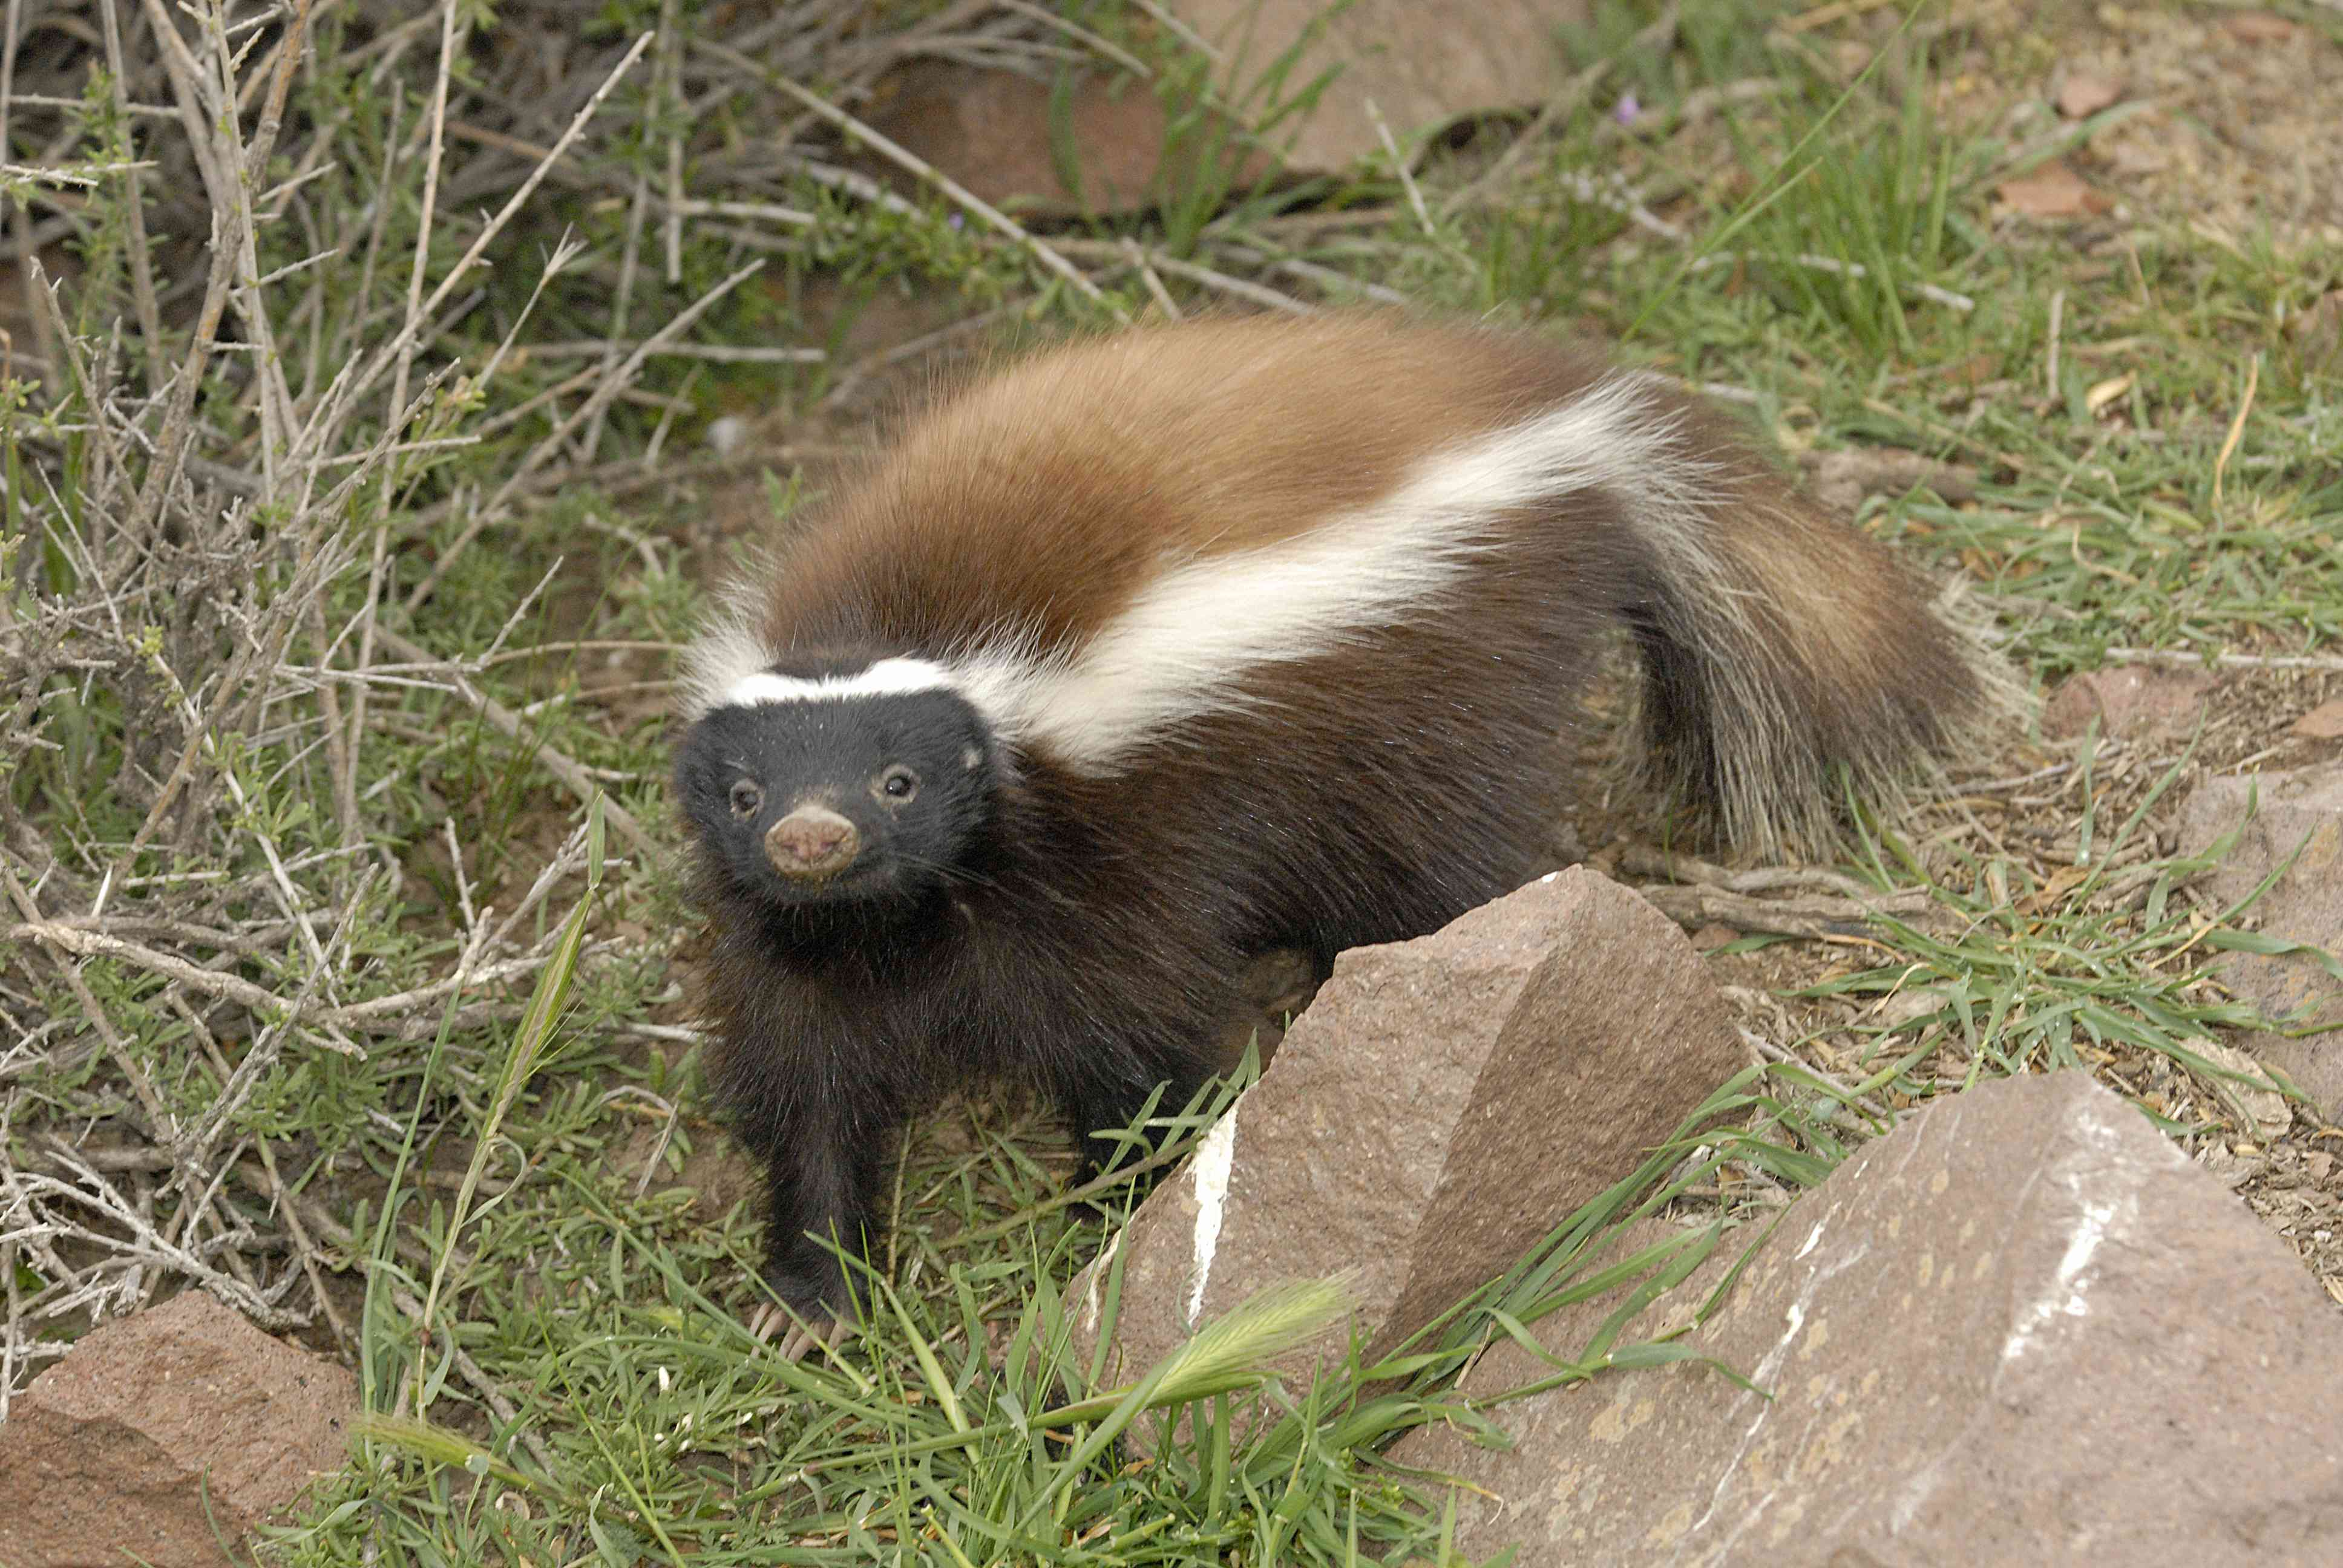 Humboldt's hog-nosed skunk standing in the grass in Patagonia